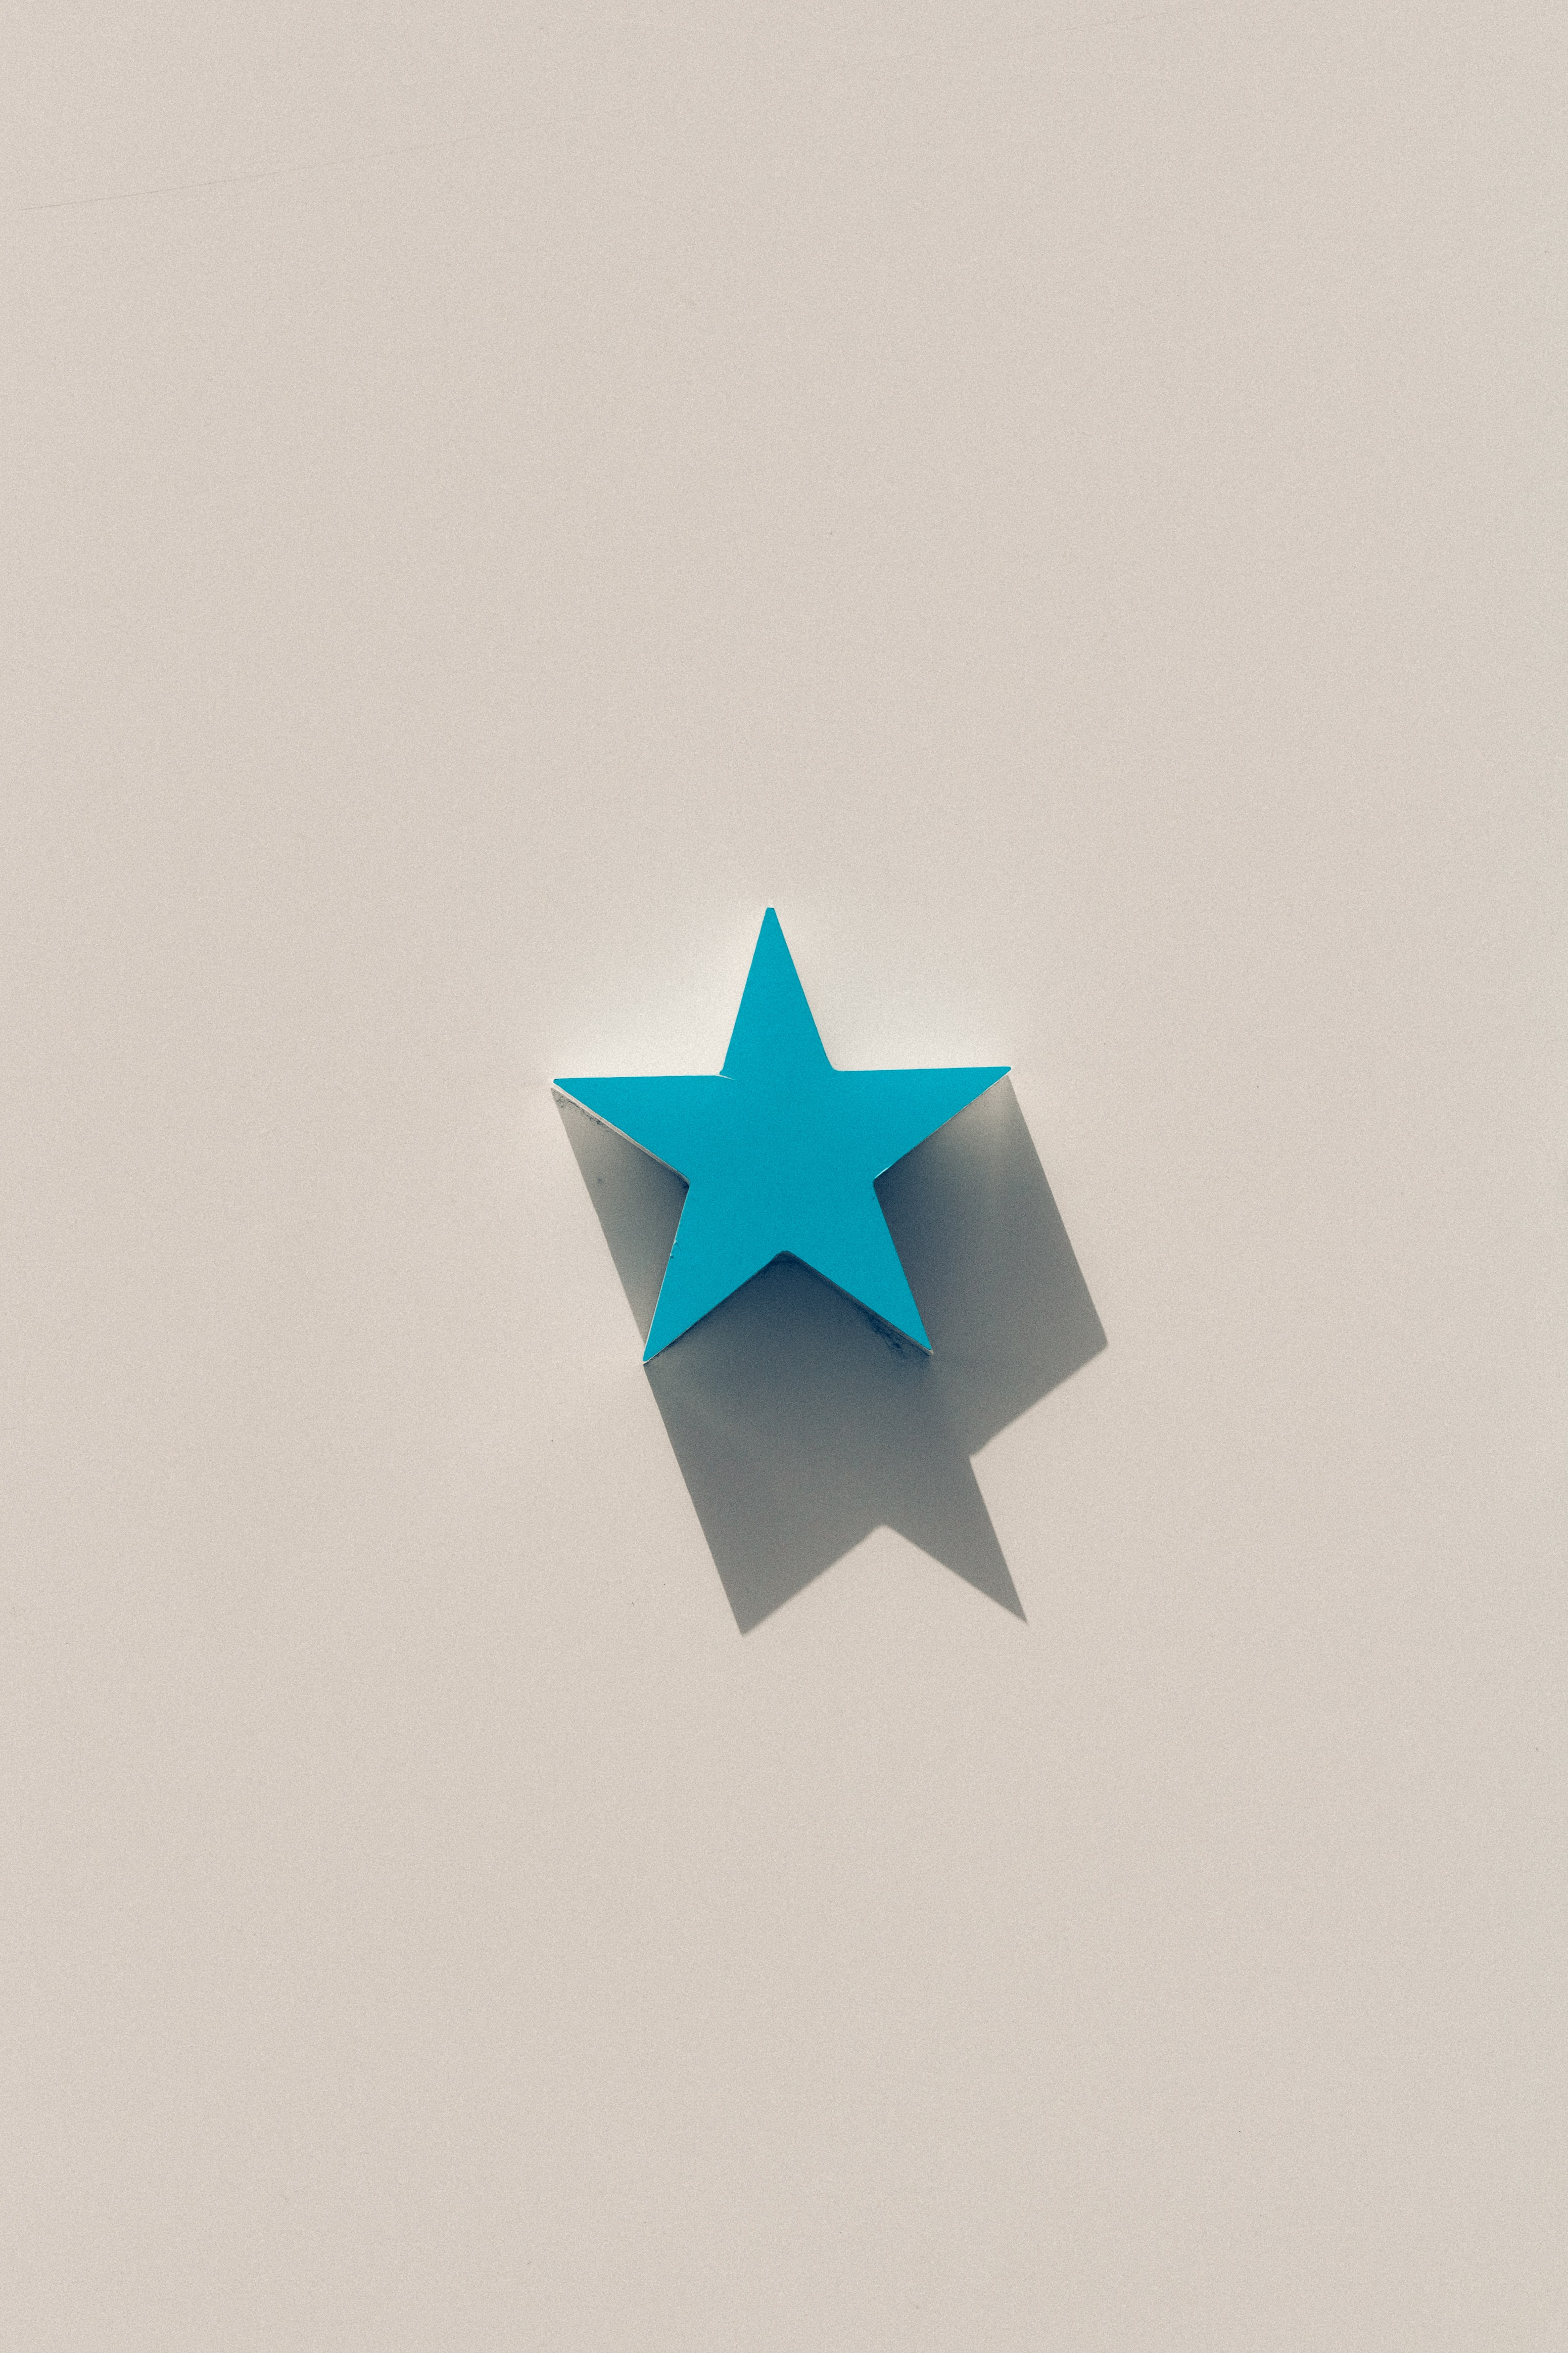 blue star illustration with white background